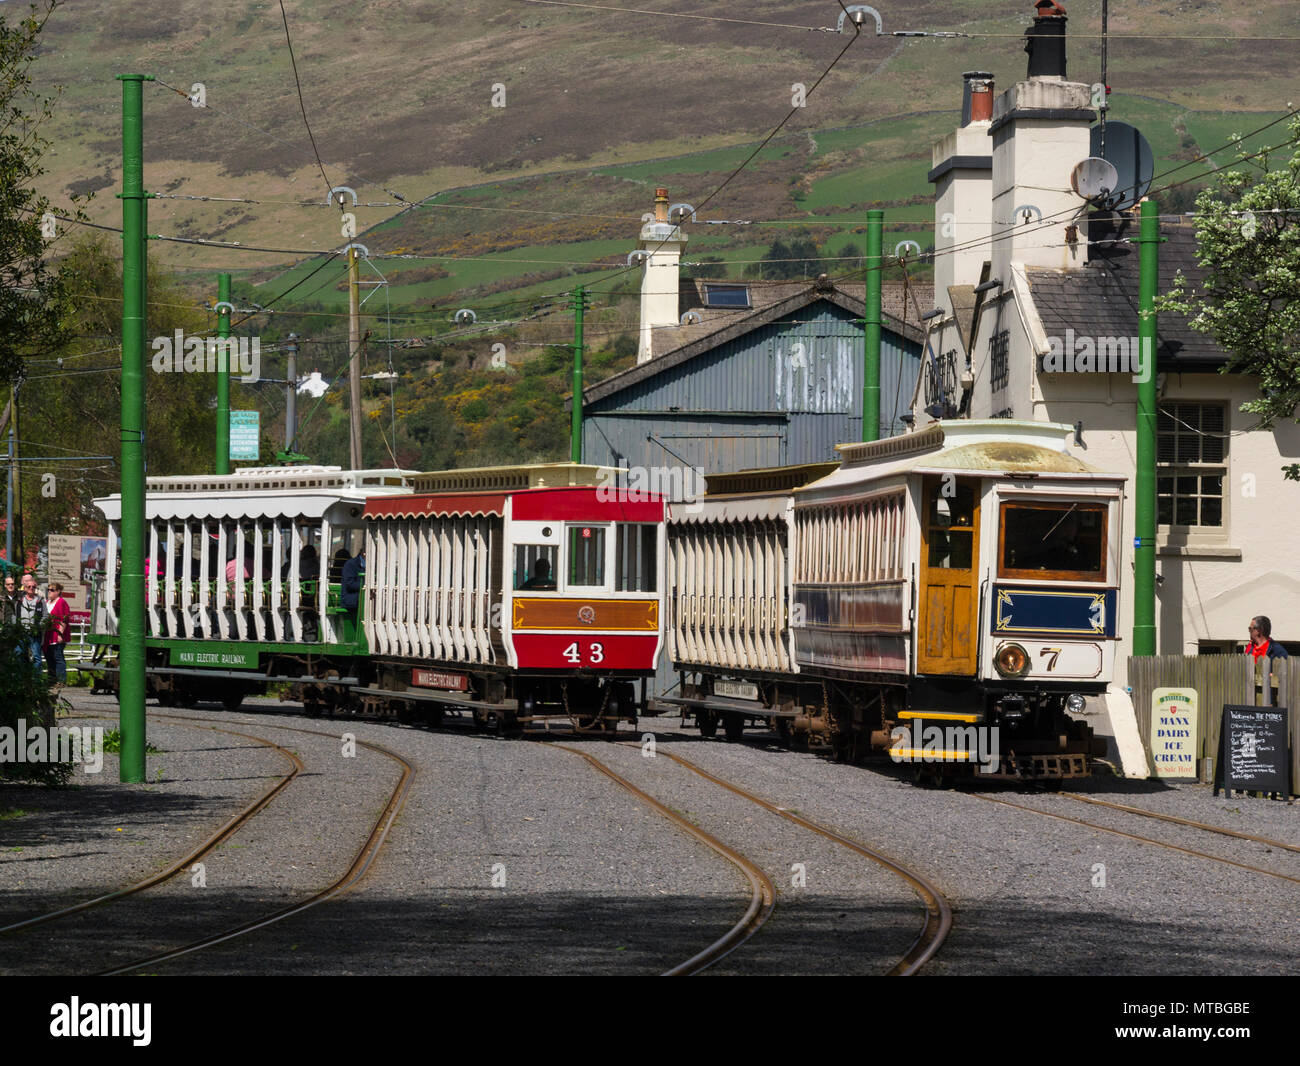 Two trains of Manx Electric Railway passing in Laxey Interchange Station Isle of Man electric interurban tramway connecting Douglas Laxey and Ramsey Stock Photo